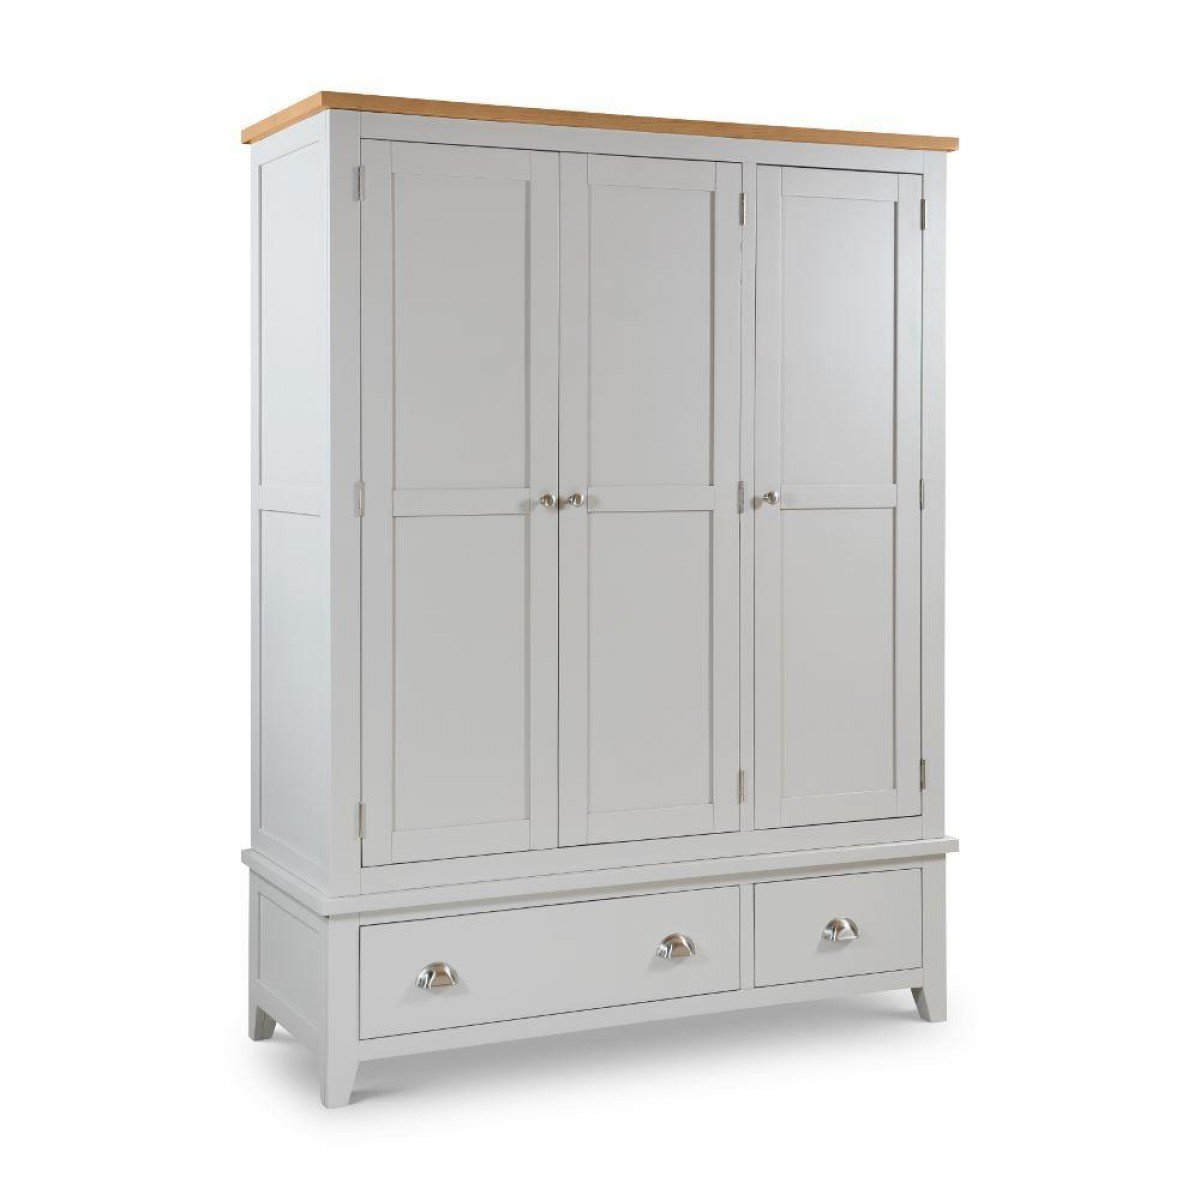 Richmond Grey and Oak 3 Door Wooden Combination Wardrobe